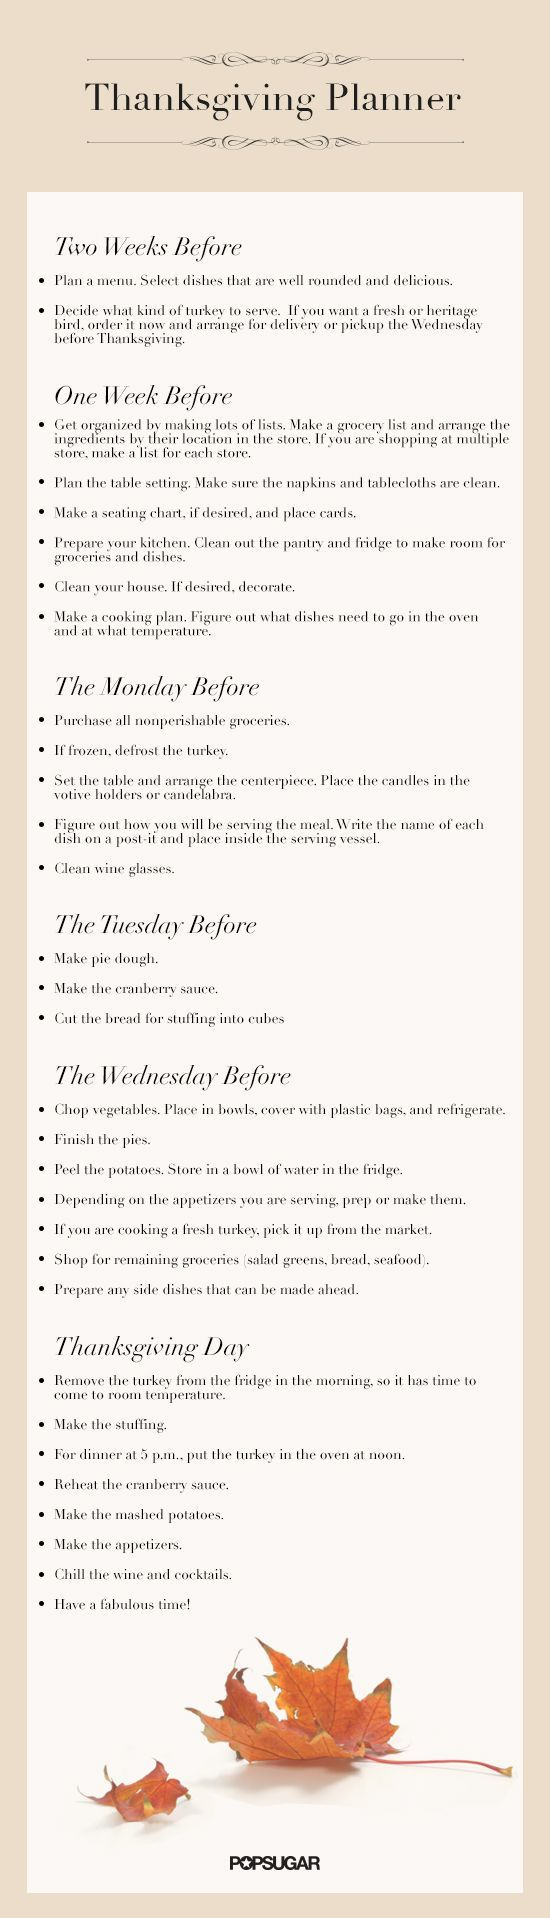 Your Official Thanksgiving Cheat Sheet @Ashley Walters Walters Walters Walters Redmon